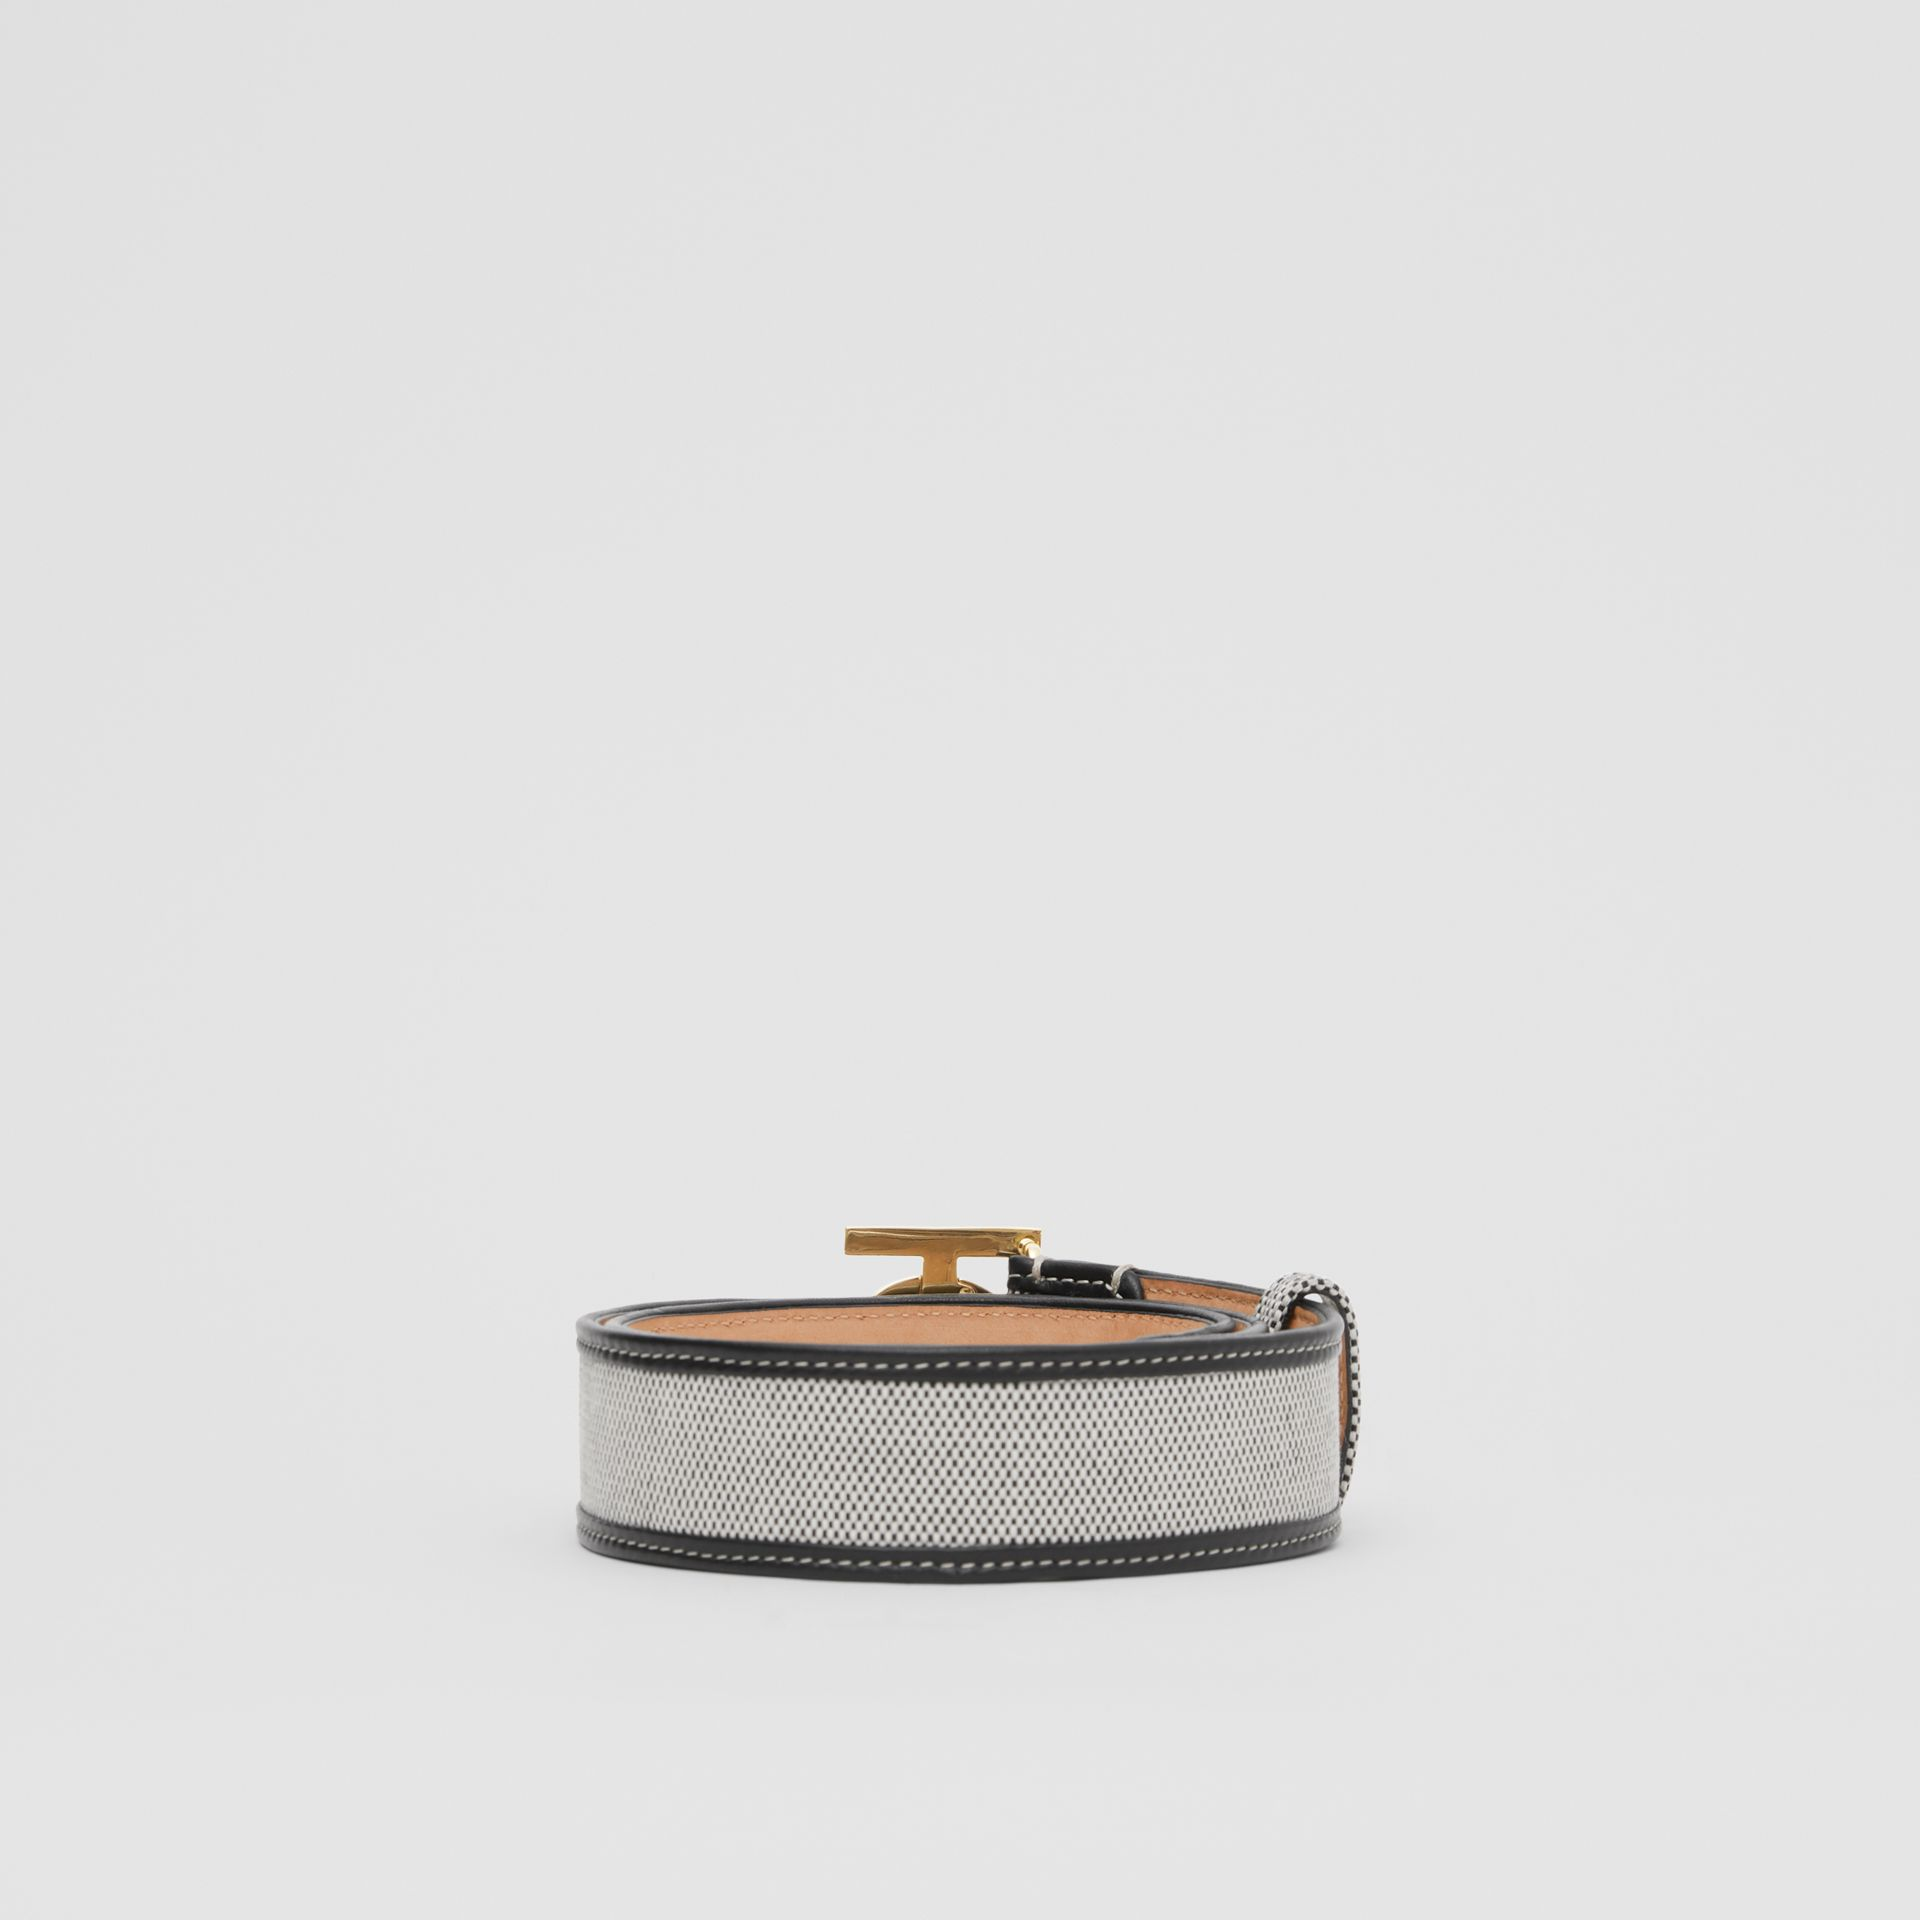 Monogram Motif Canvas and Leather Belt in Black - Women | Burberry United Kingdom - gallery image 4